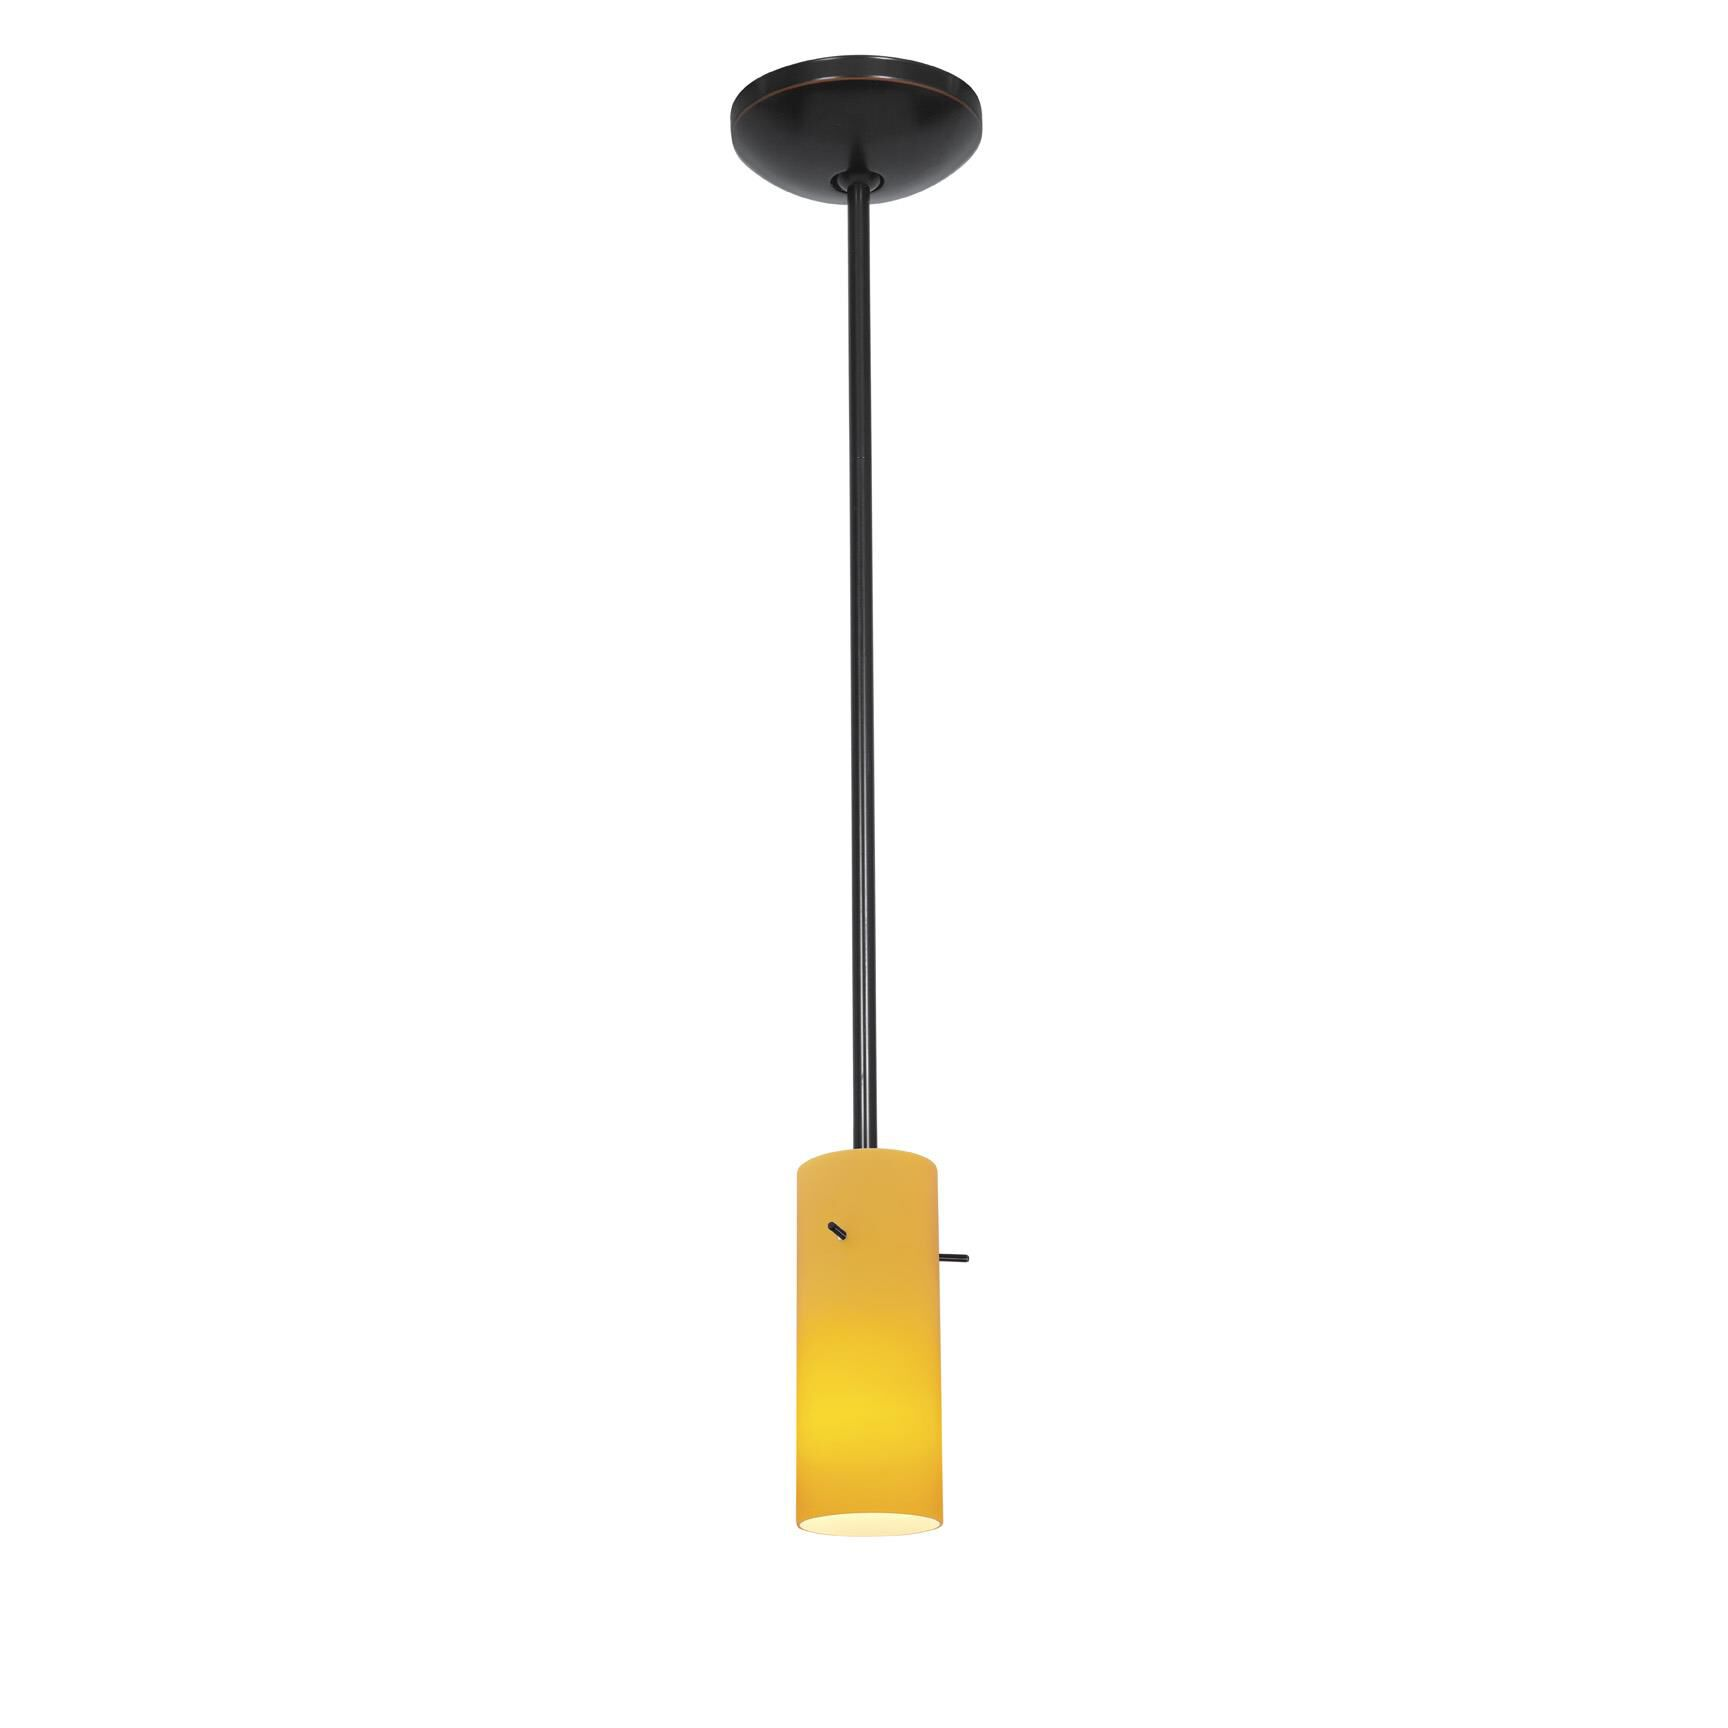 Access Lighting Cylinder 4 Inch Mini Pendant Cylinder 28030 1R ORBAMB Modern Contemporary